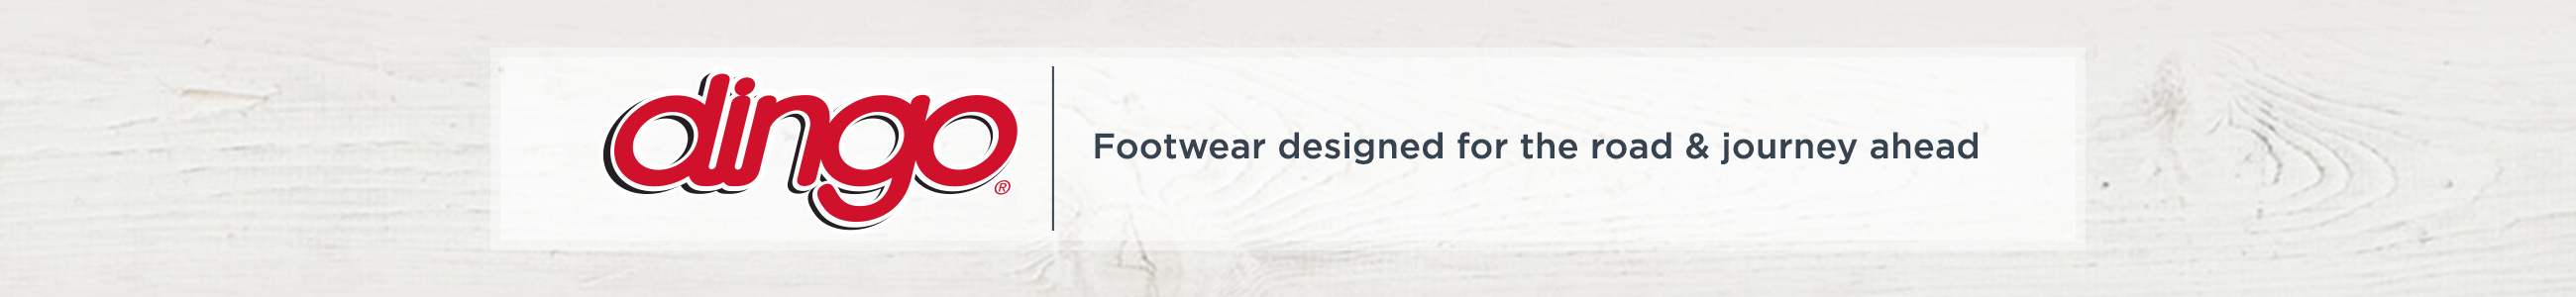 Dingo — Footwear designed for the road & journey ahead